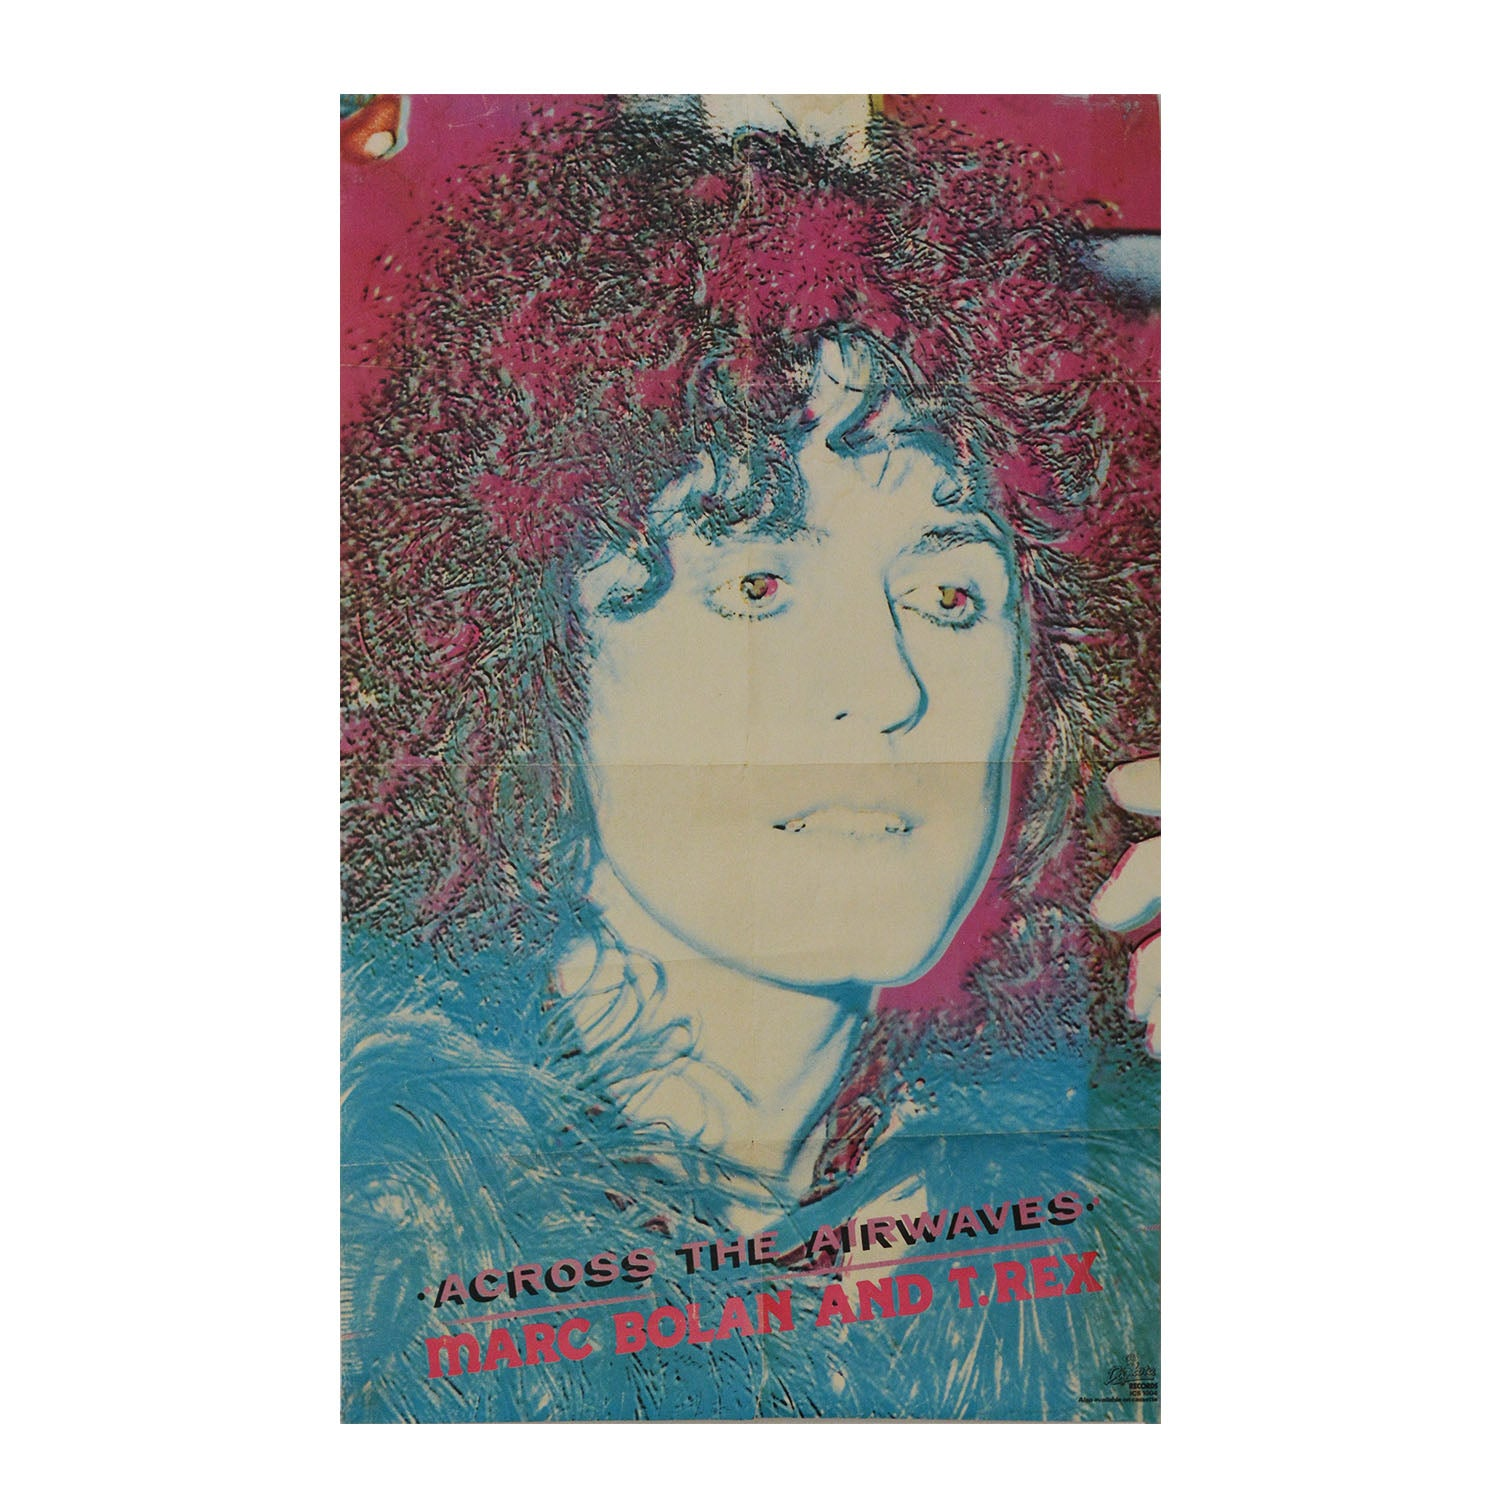 Original poster: Across the Airways. Marc Bolan & T Rex